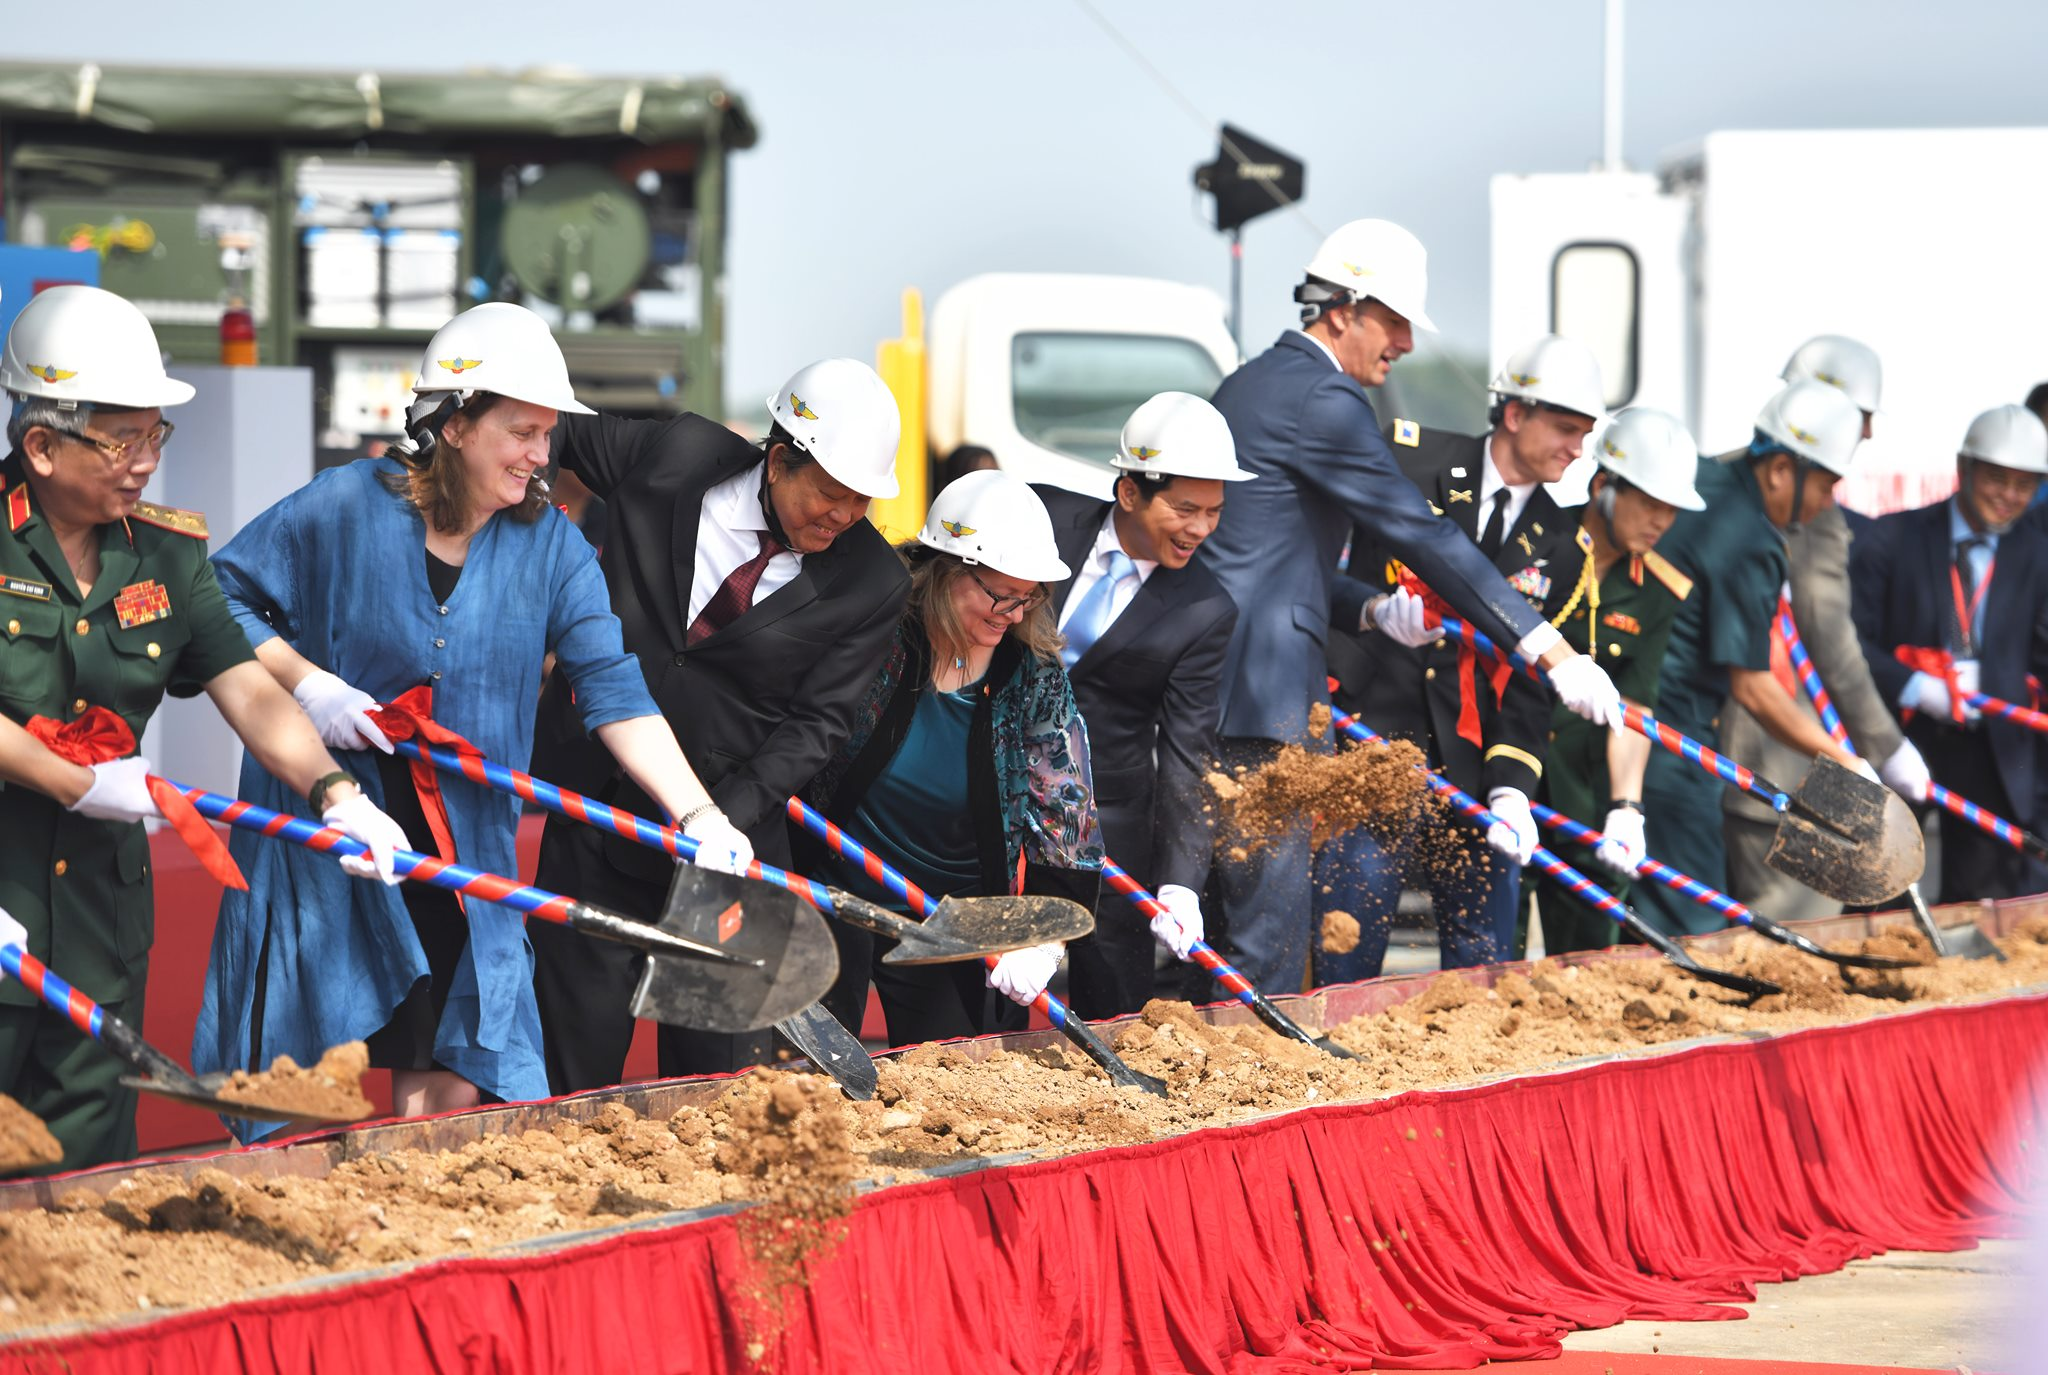 Marie Damour attends the groundbreaking ceremony of the project to clean up the dioxin contamination hosted by the United States Agency for International Development (USAID) and Vietnam's Ministry of Defense at Bien Hoa airport on December 5, 2019. Photo: U.S. Consulate in Ho Chi Minh City